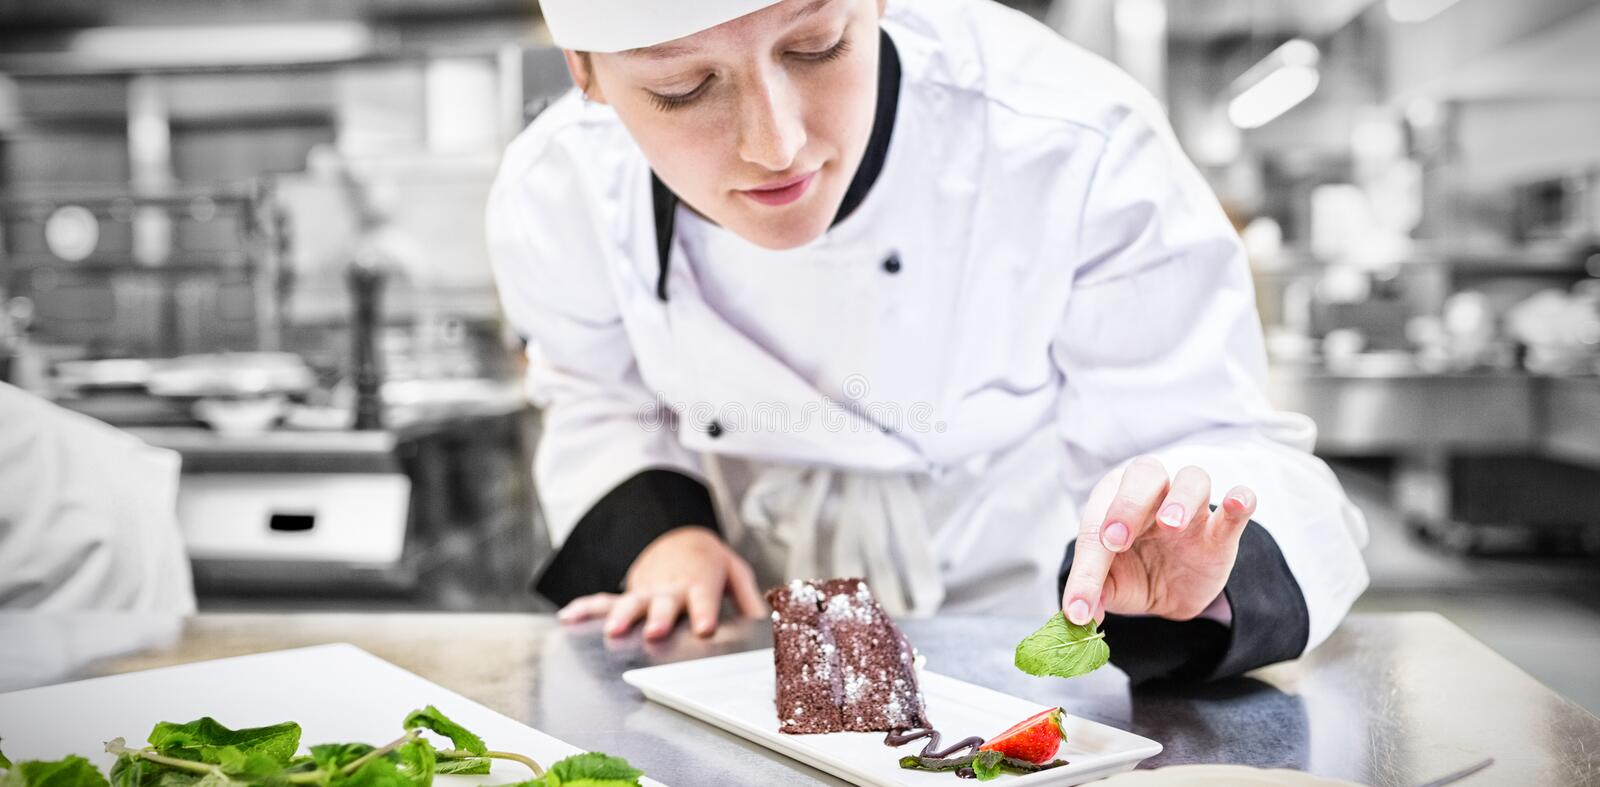 Chef putting mint with her chocolate cake royalty free stock photography